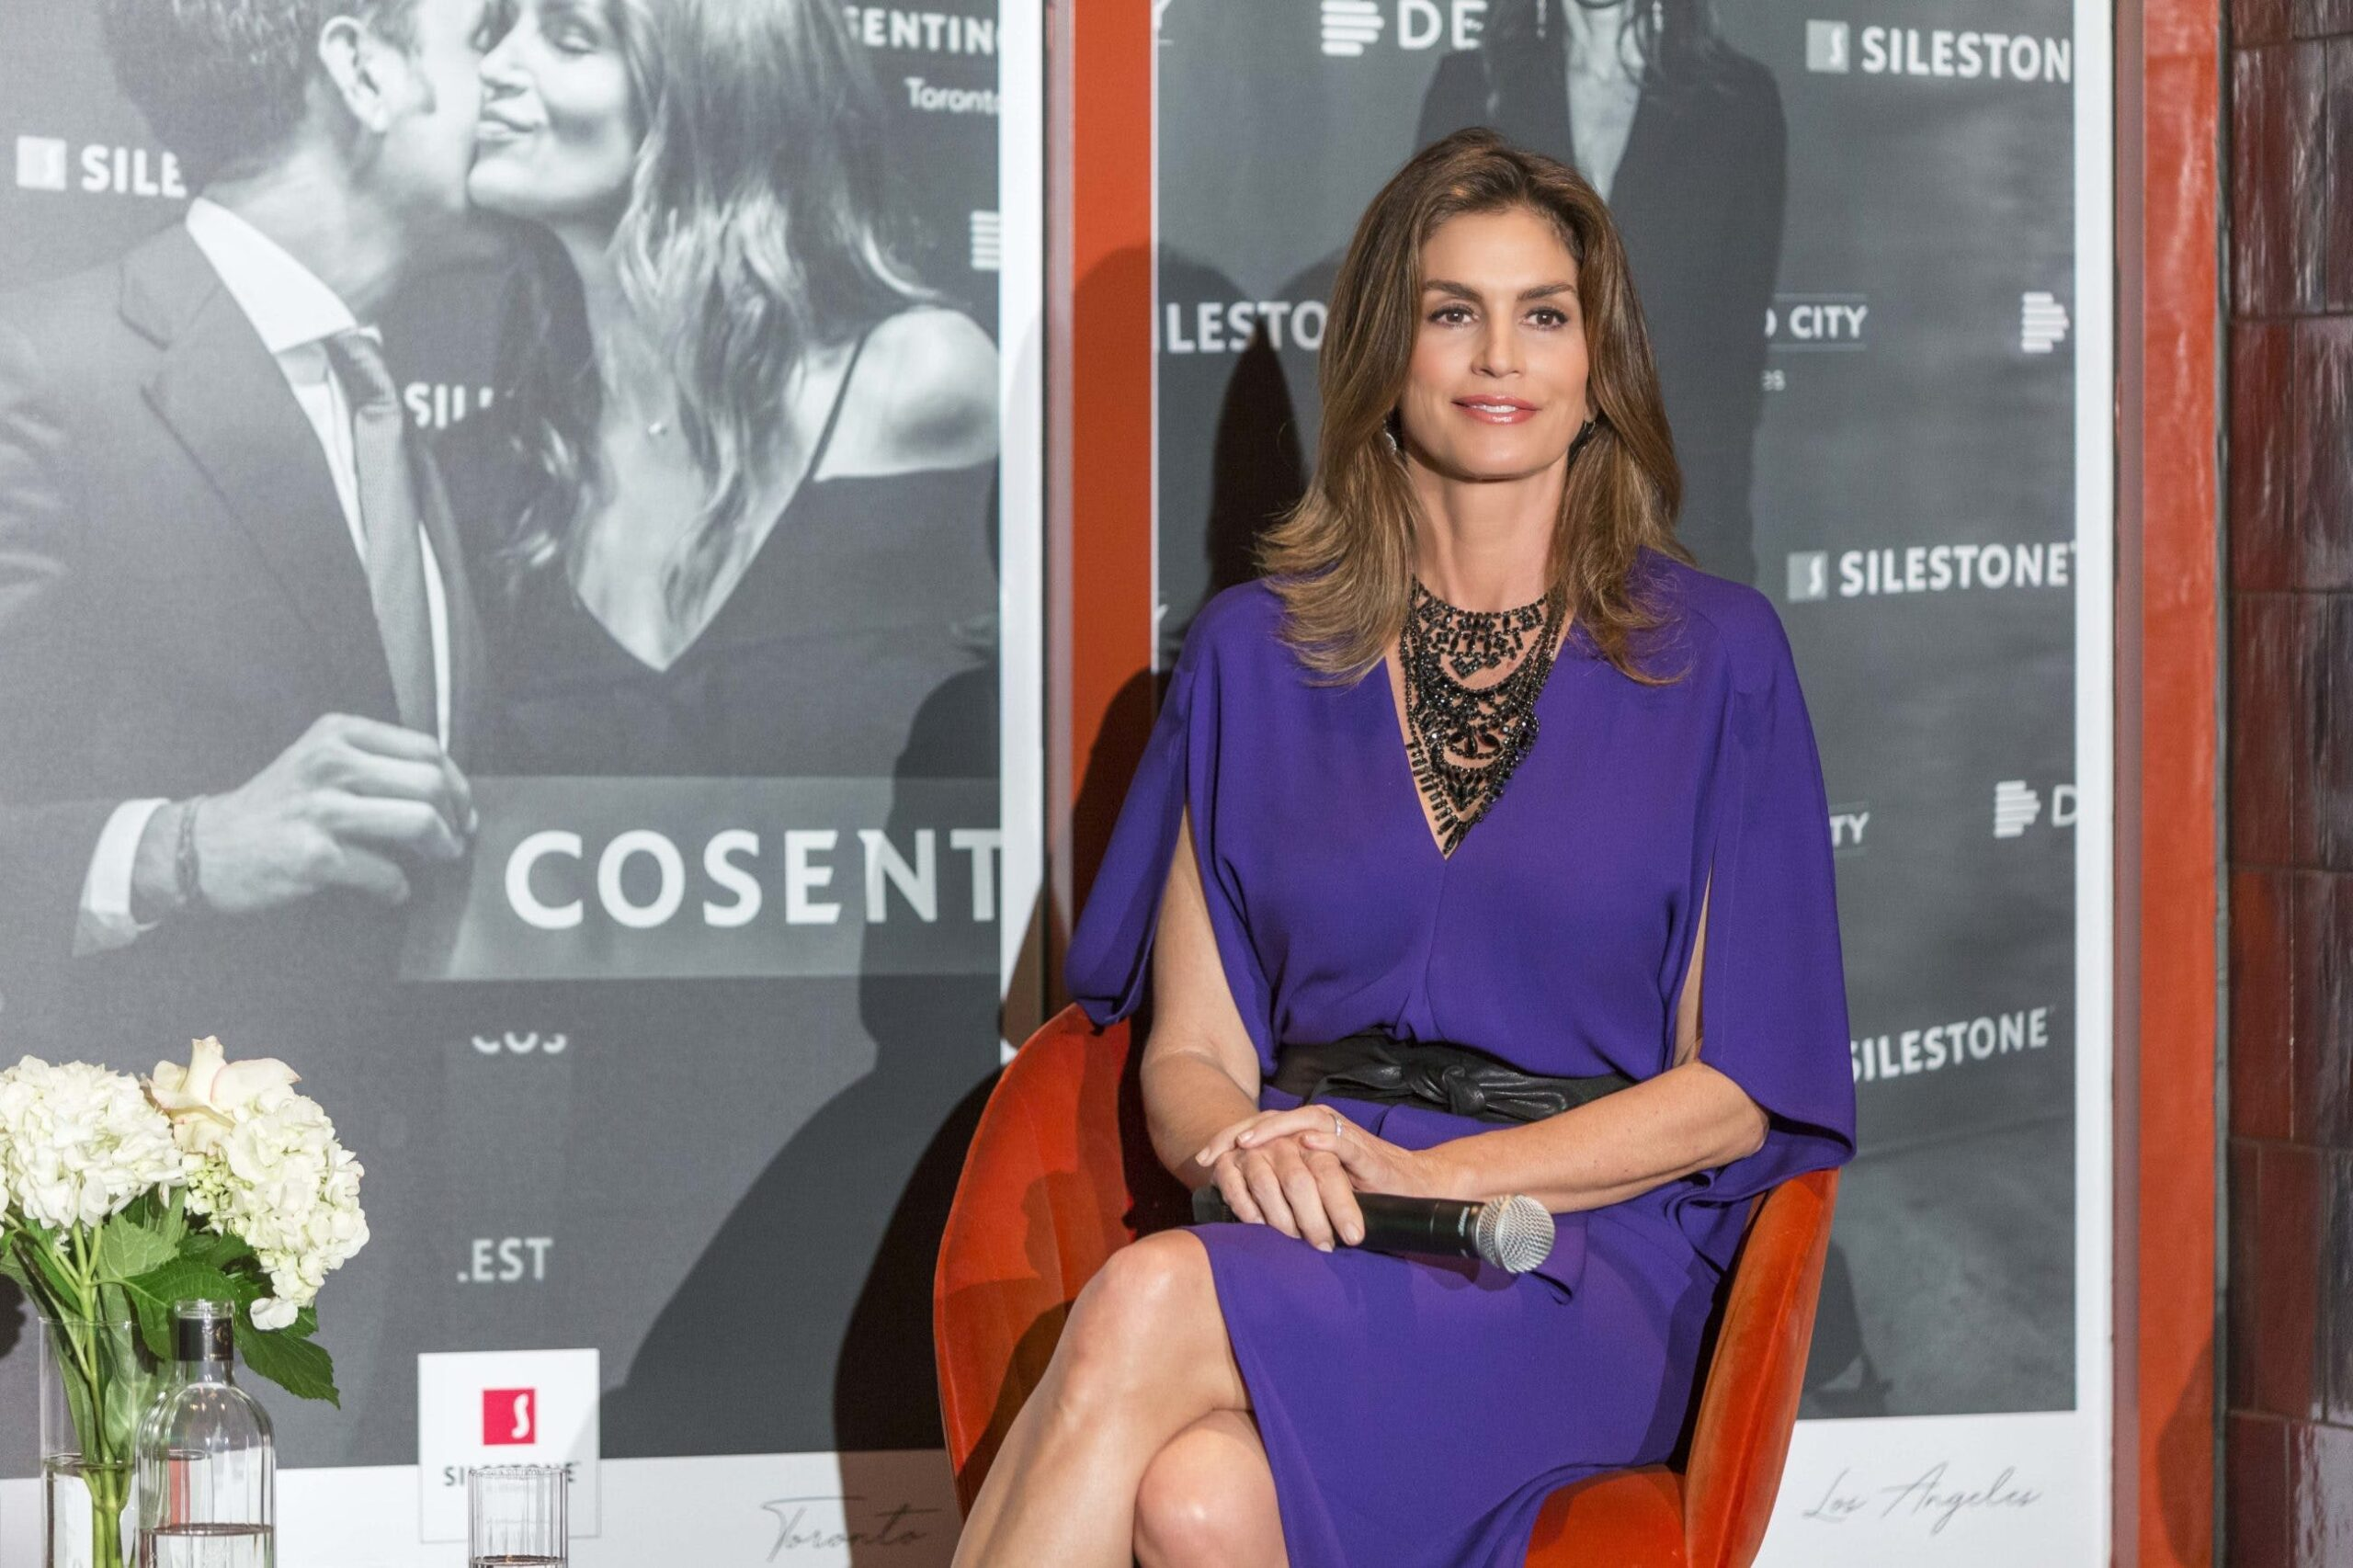 """Image of Cindy Crawford Cosentino 9 prensa 1 scaled in Cindy Crawford and """"Tops on Top"""" by Silestone® in Houston - Cosentino"""